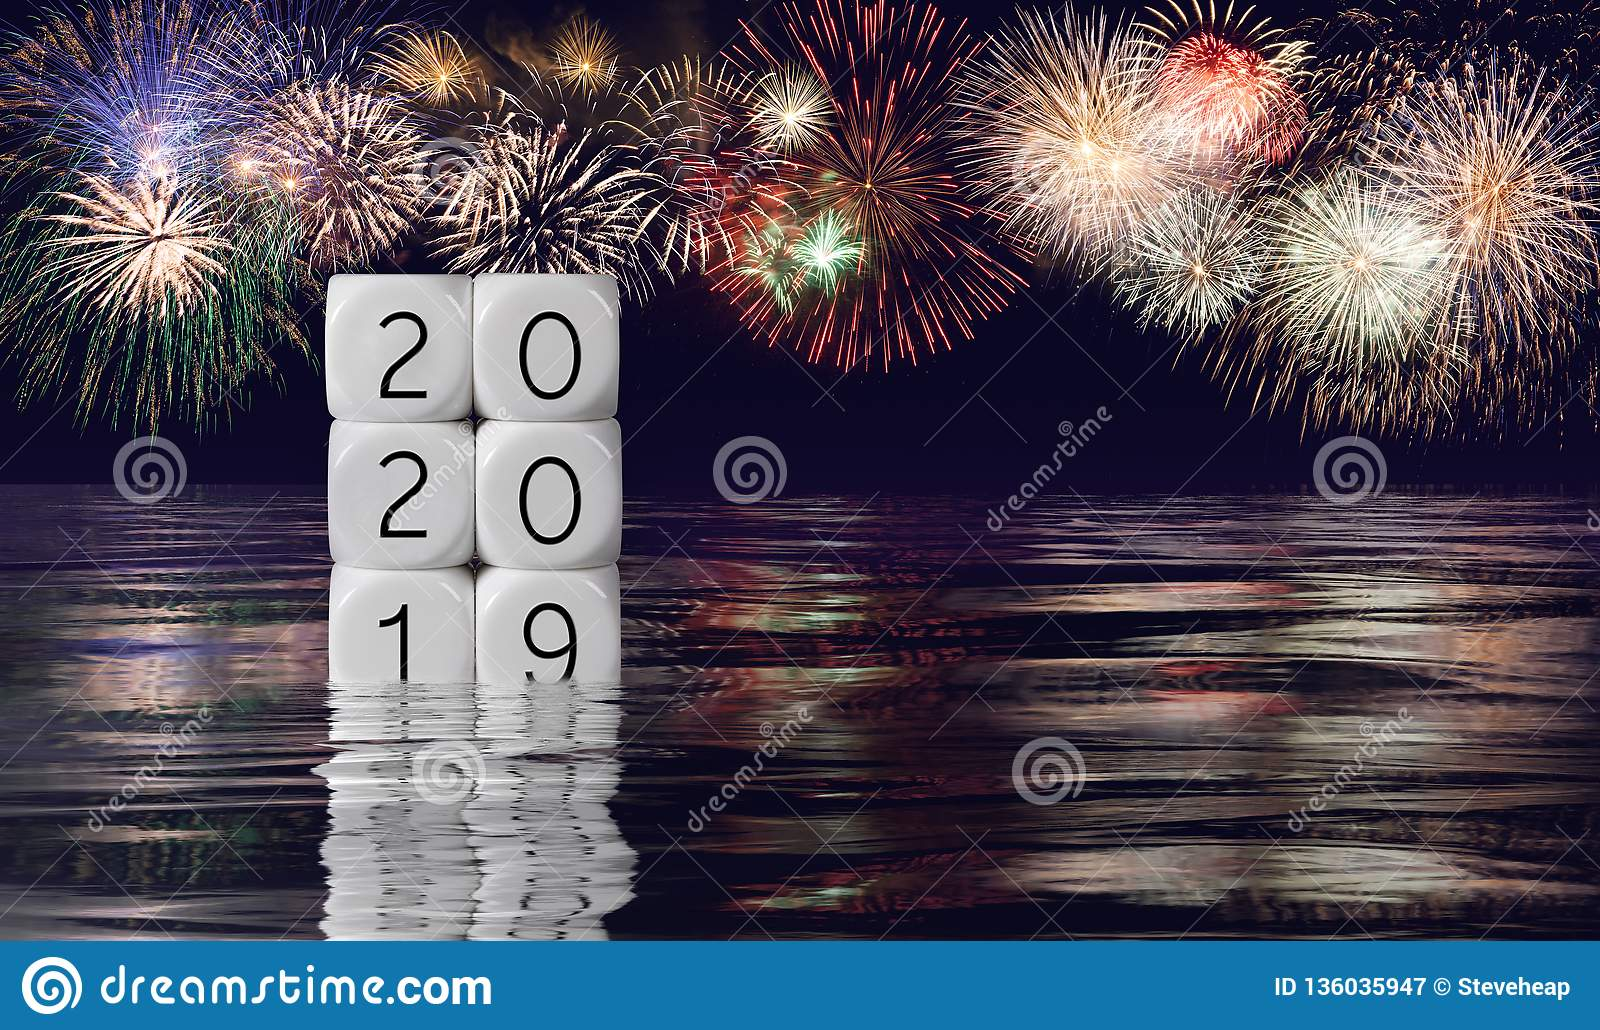 Composite of fireworks and calendar for 2020 New Year holiday background